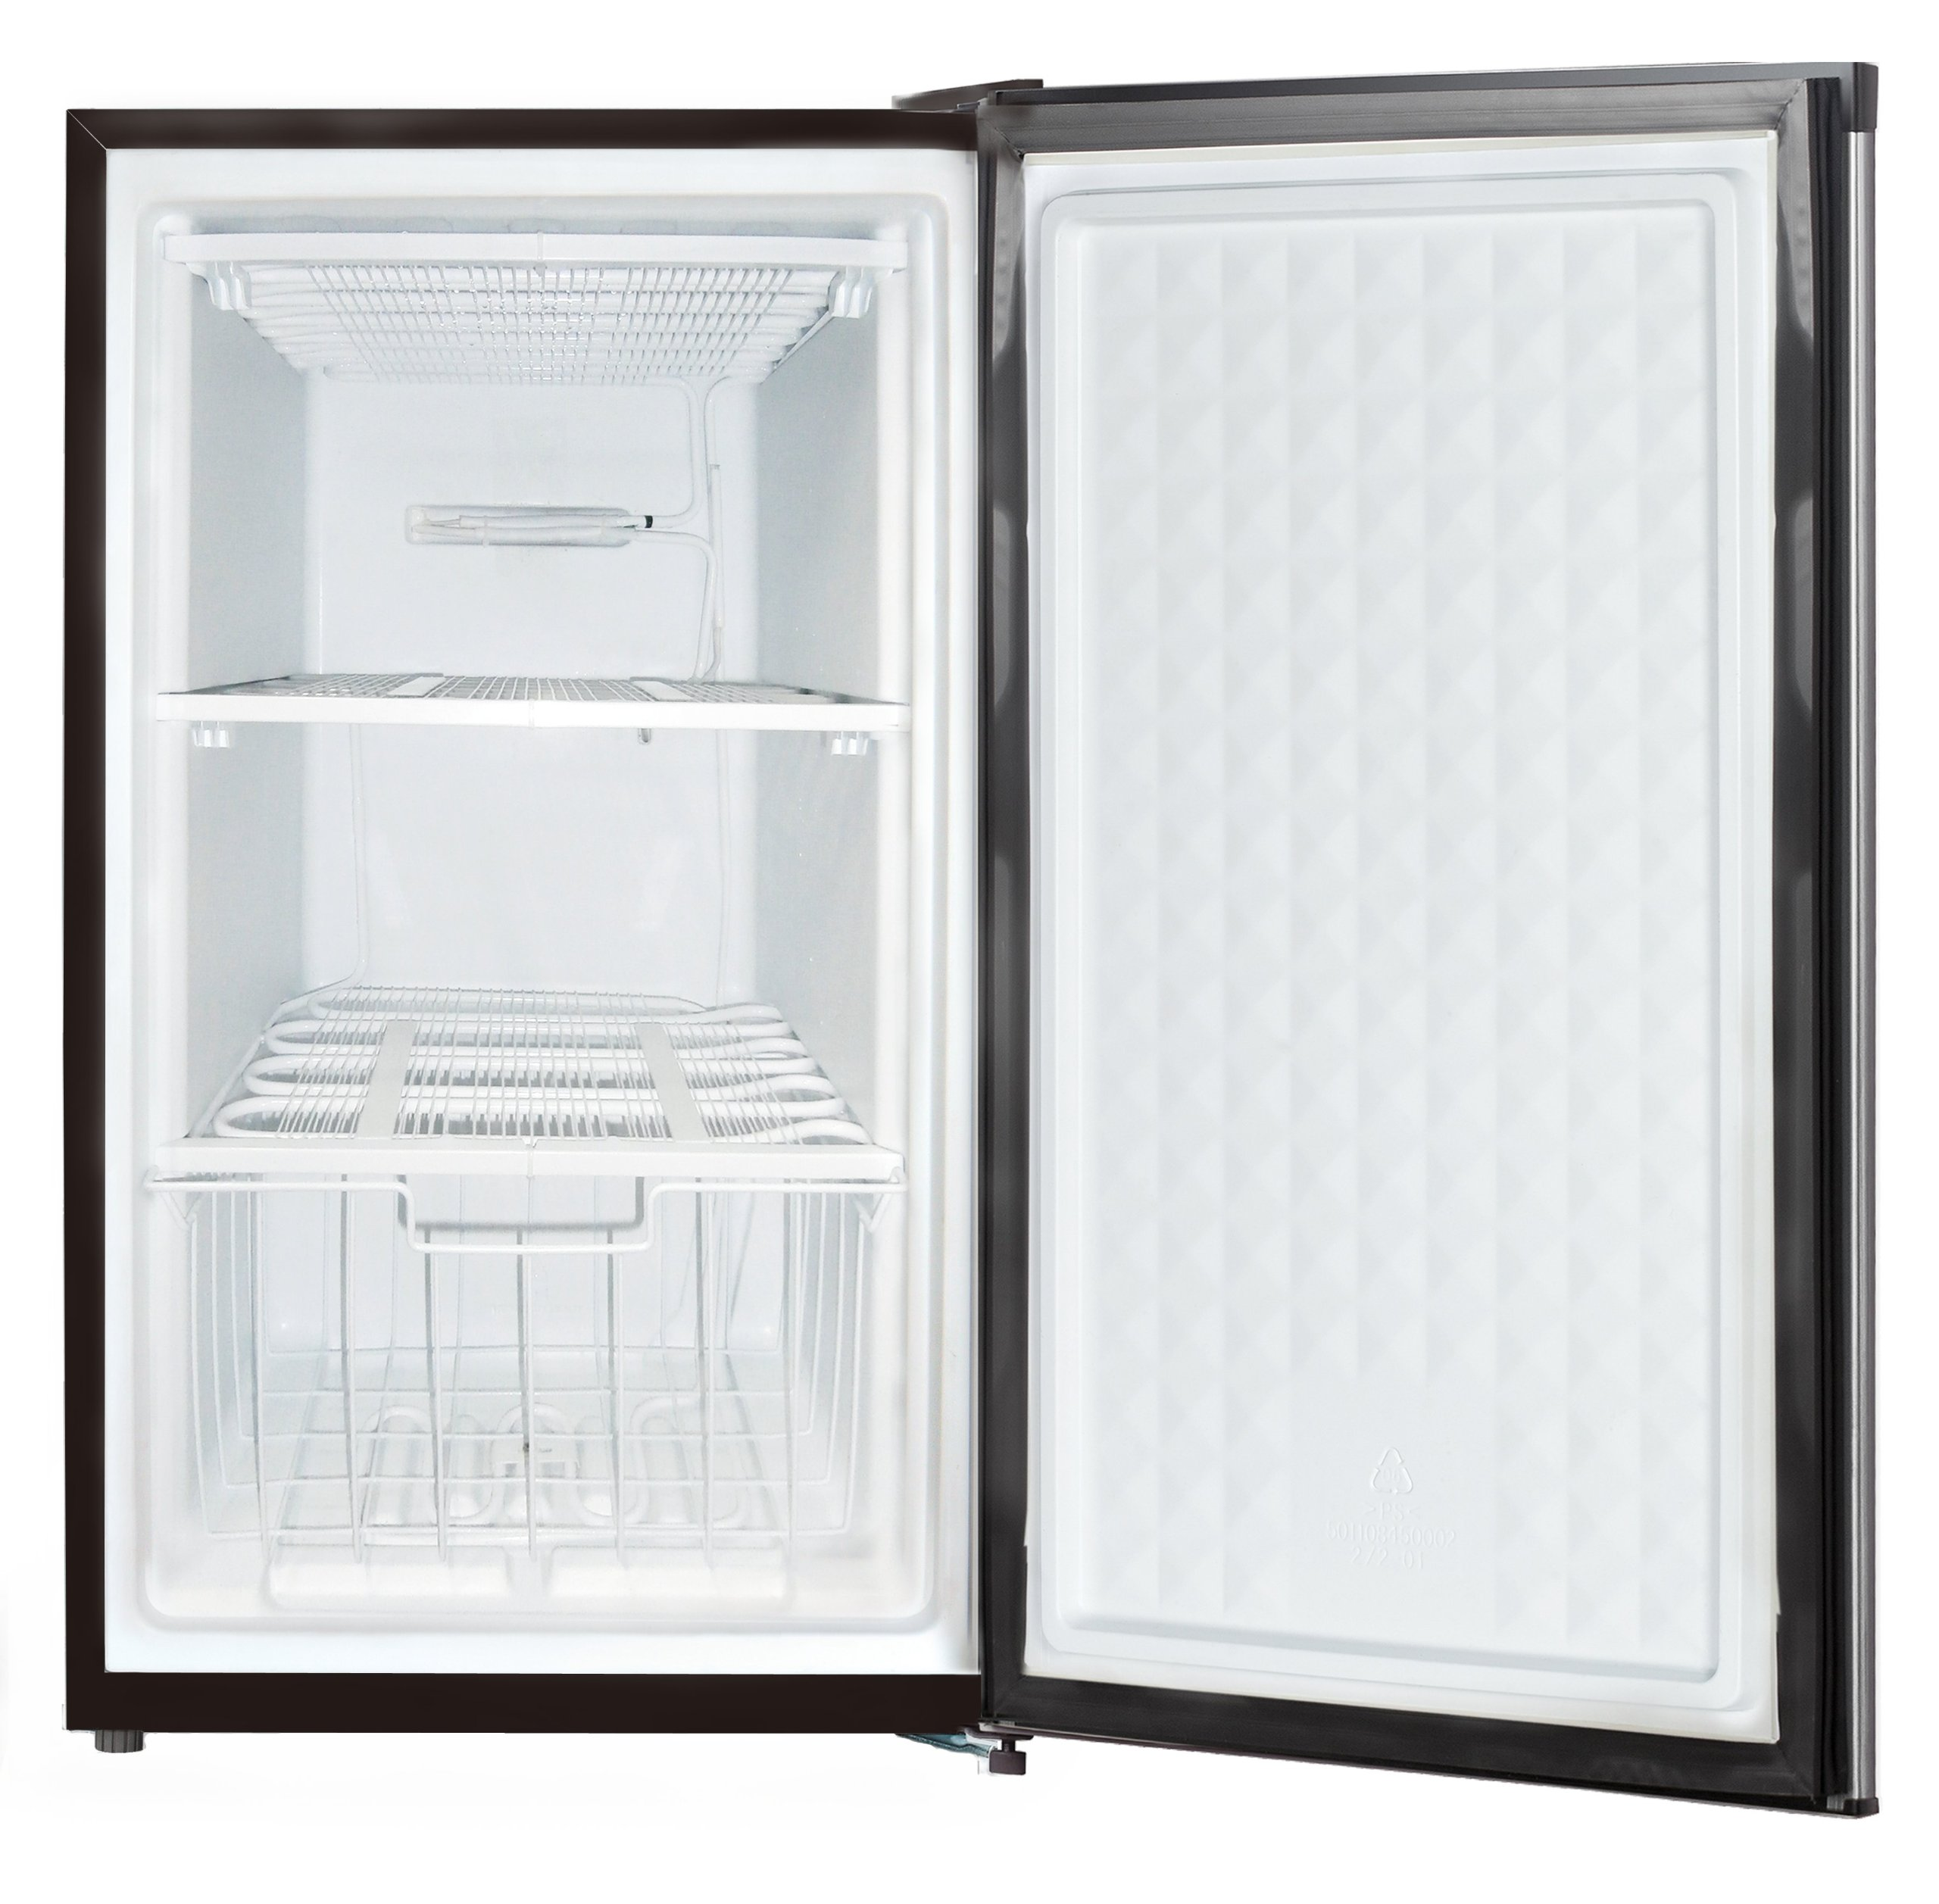 Midea is proud to offer a fine selection of the highest quality refrigerators and freezers in a variety of styles and functions.